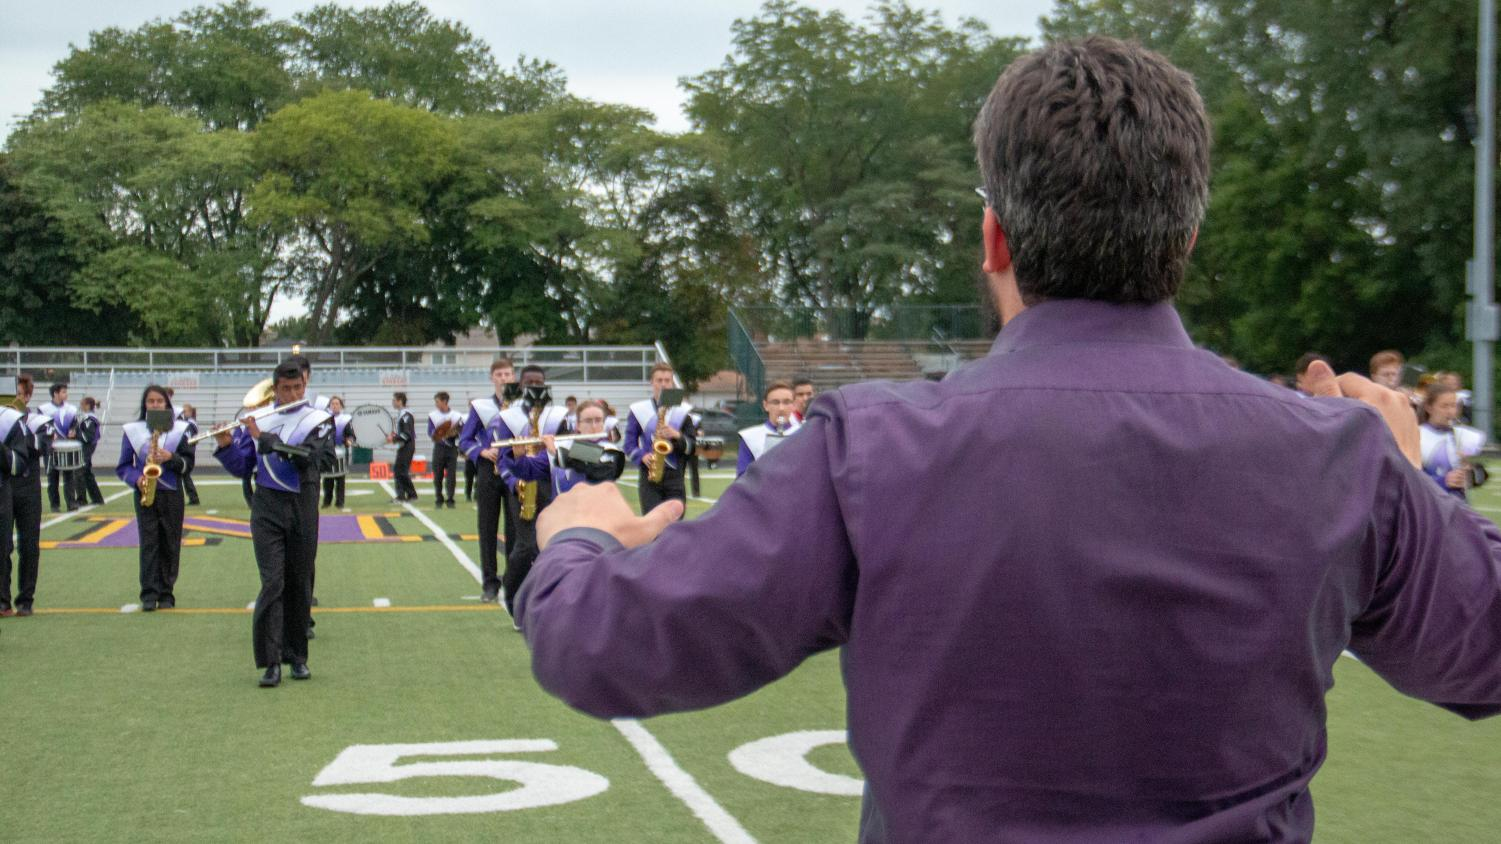 Niles North marching band drums up fans